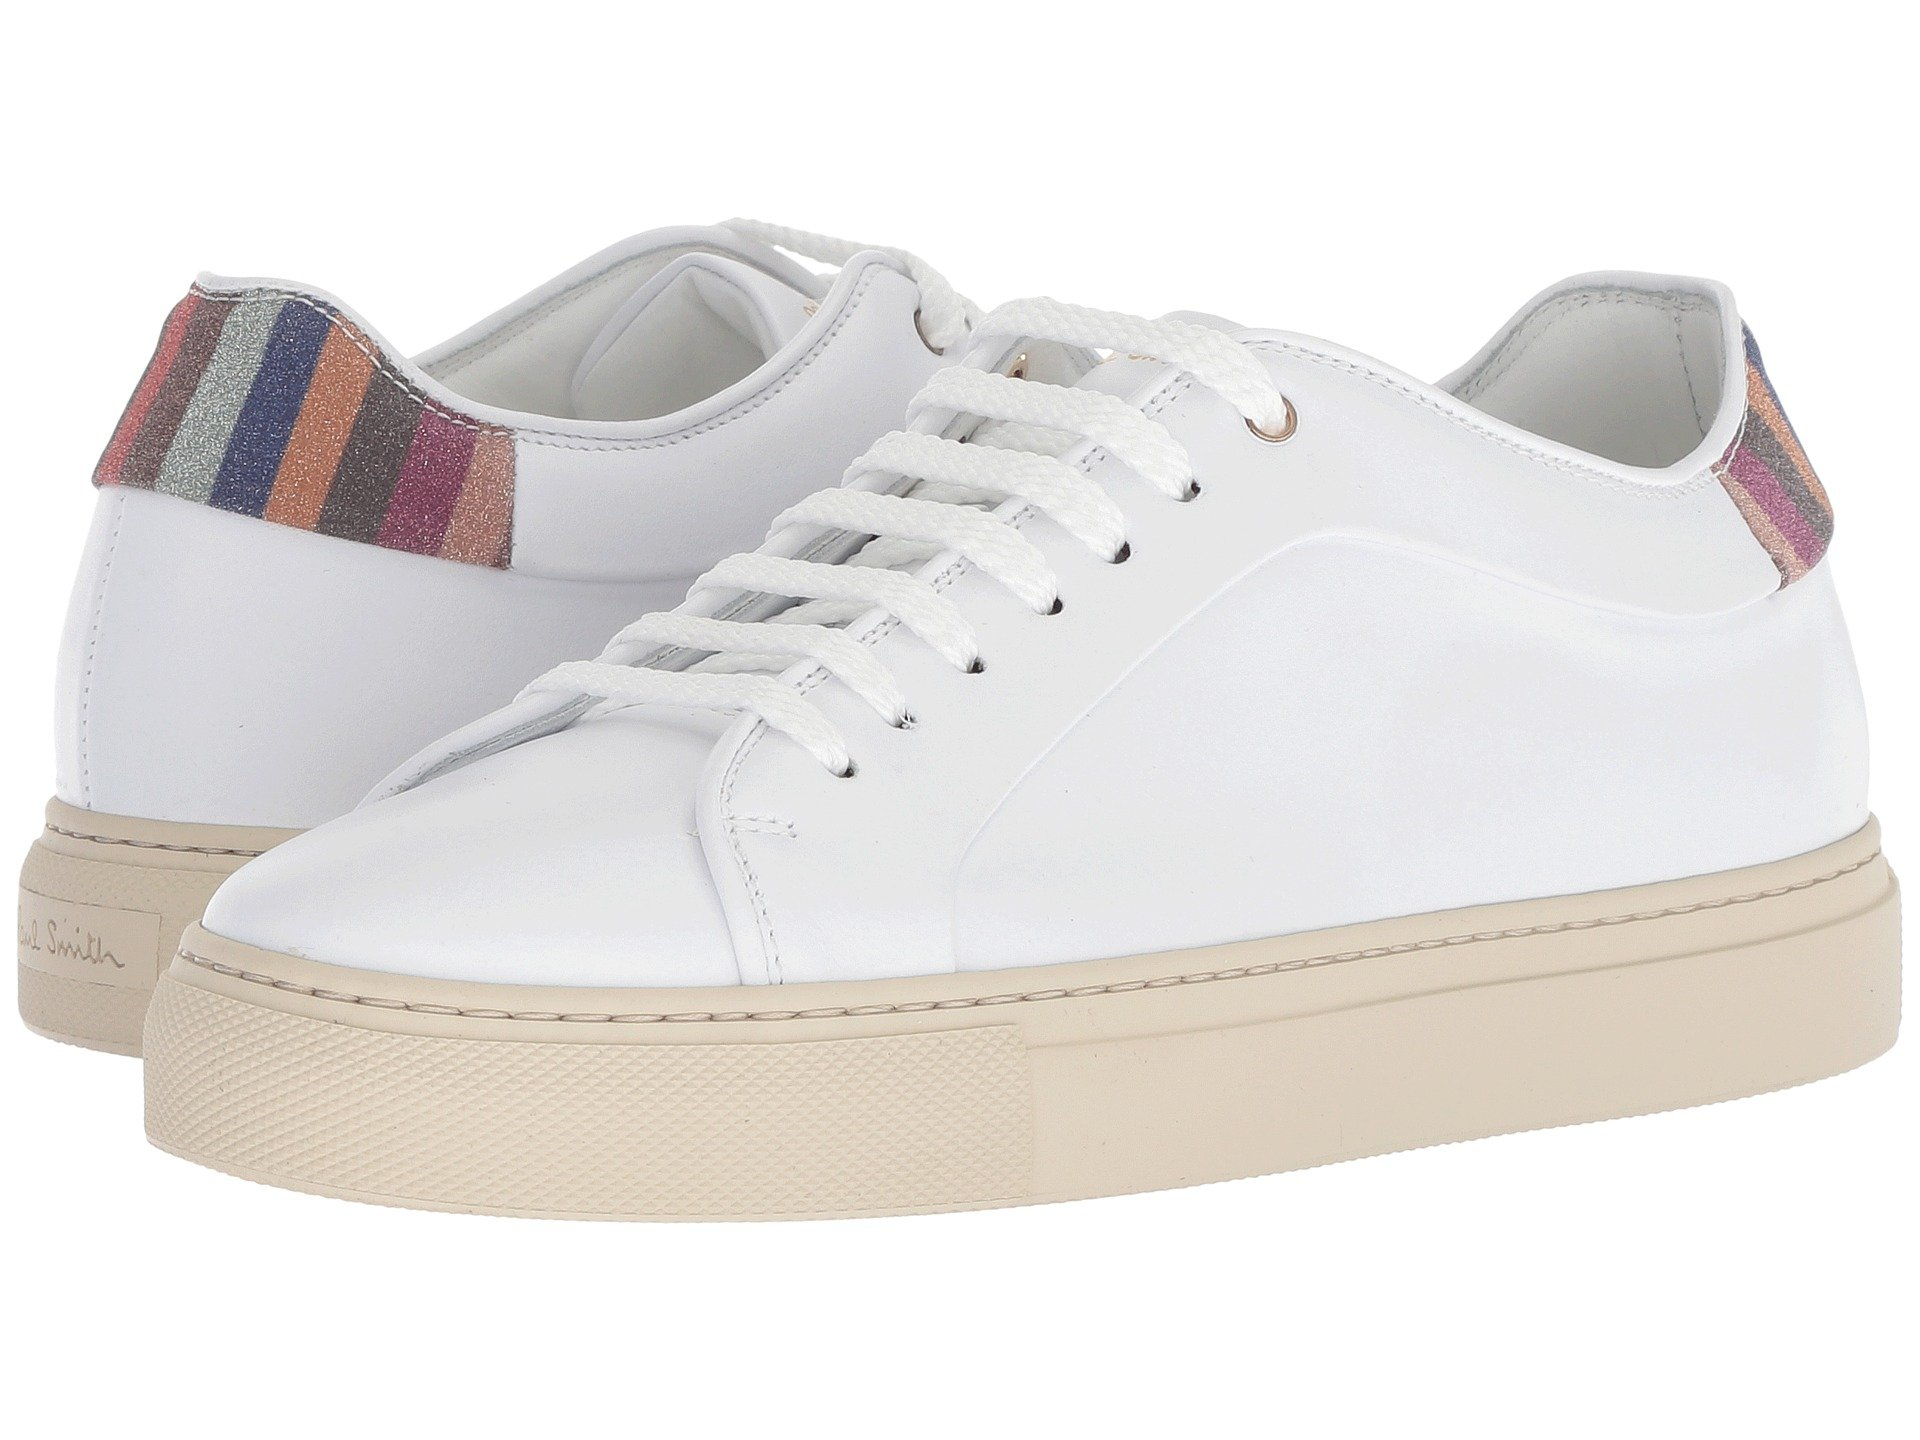 Paul 2 White Sneaker Basso Smith HqUwyHr4